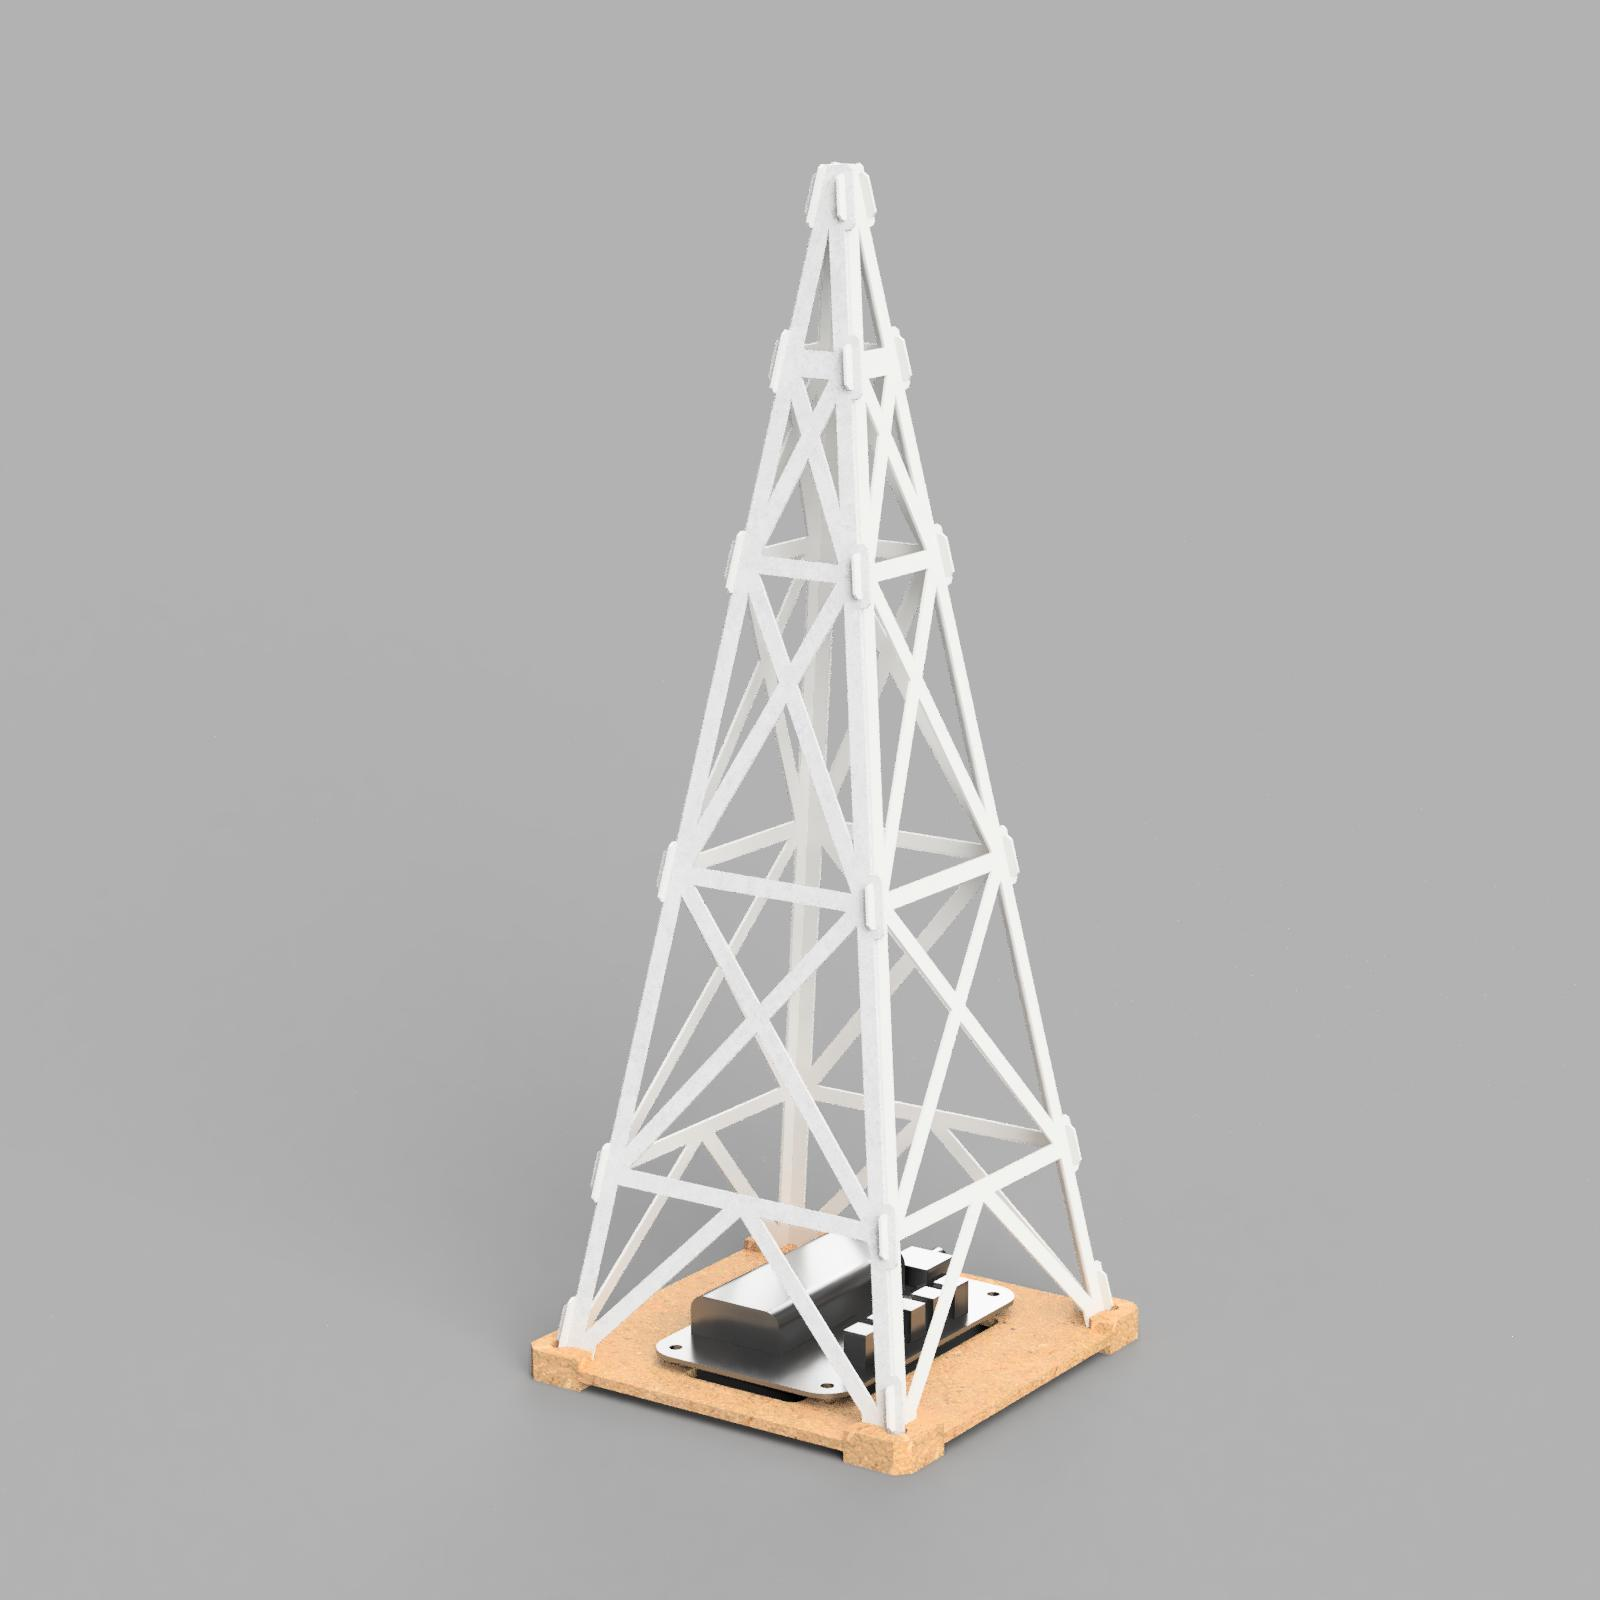 A render image of the paper tower with the radio receiver at the base.